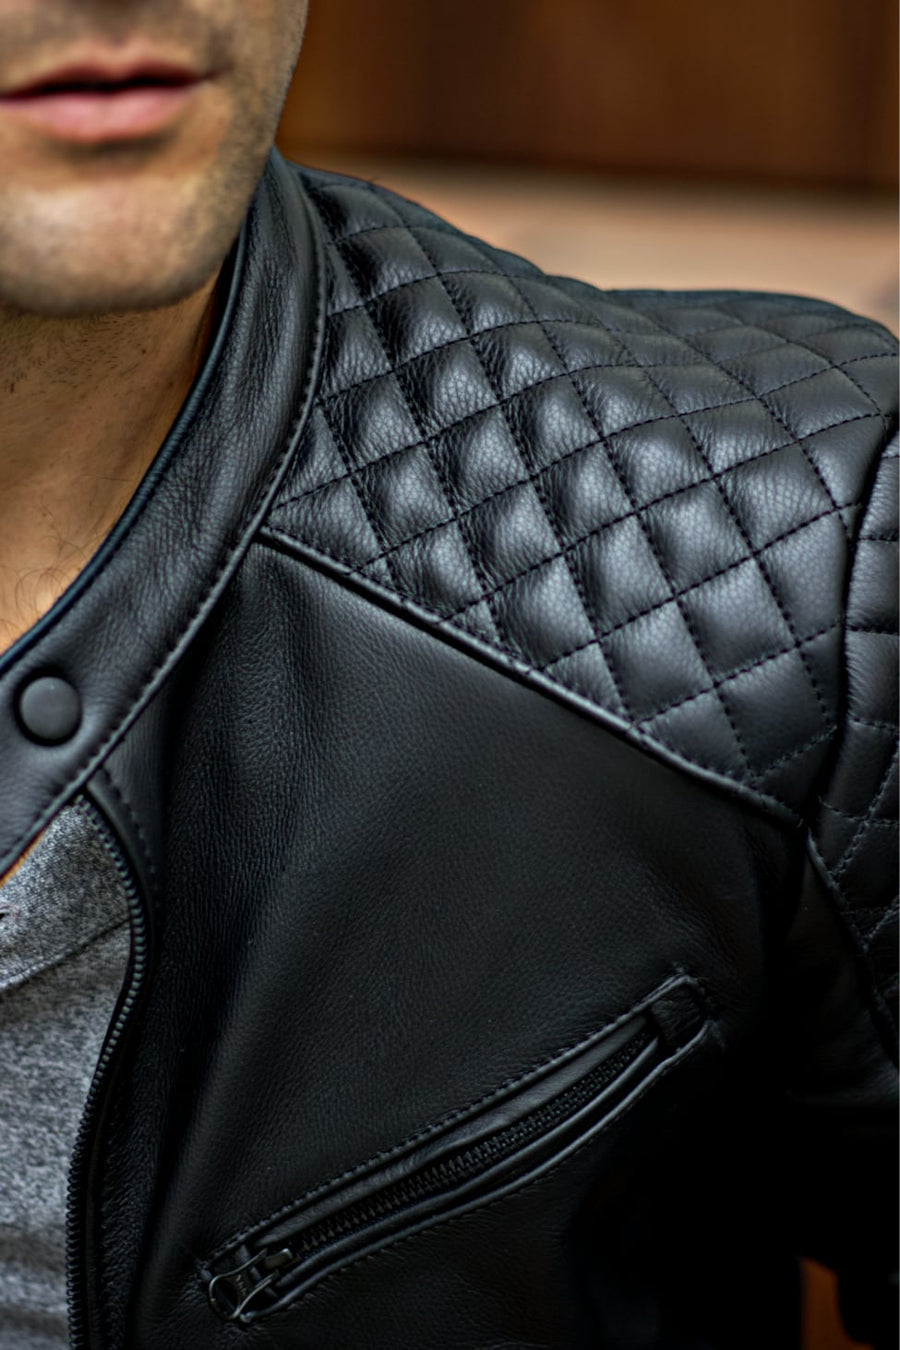 R79 QS LIMITED Leather Jacket in Black Uruguayan Cowhide - Quilted